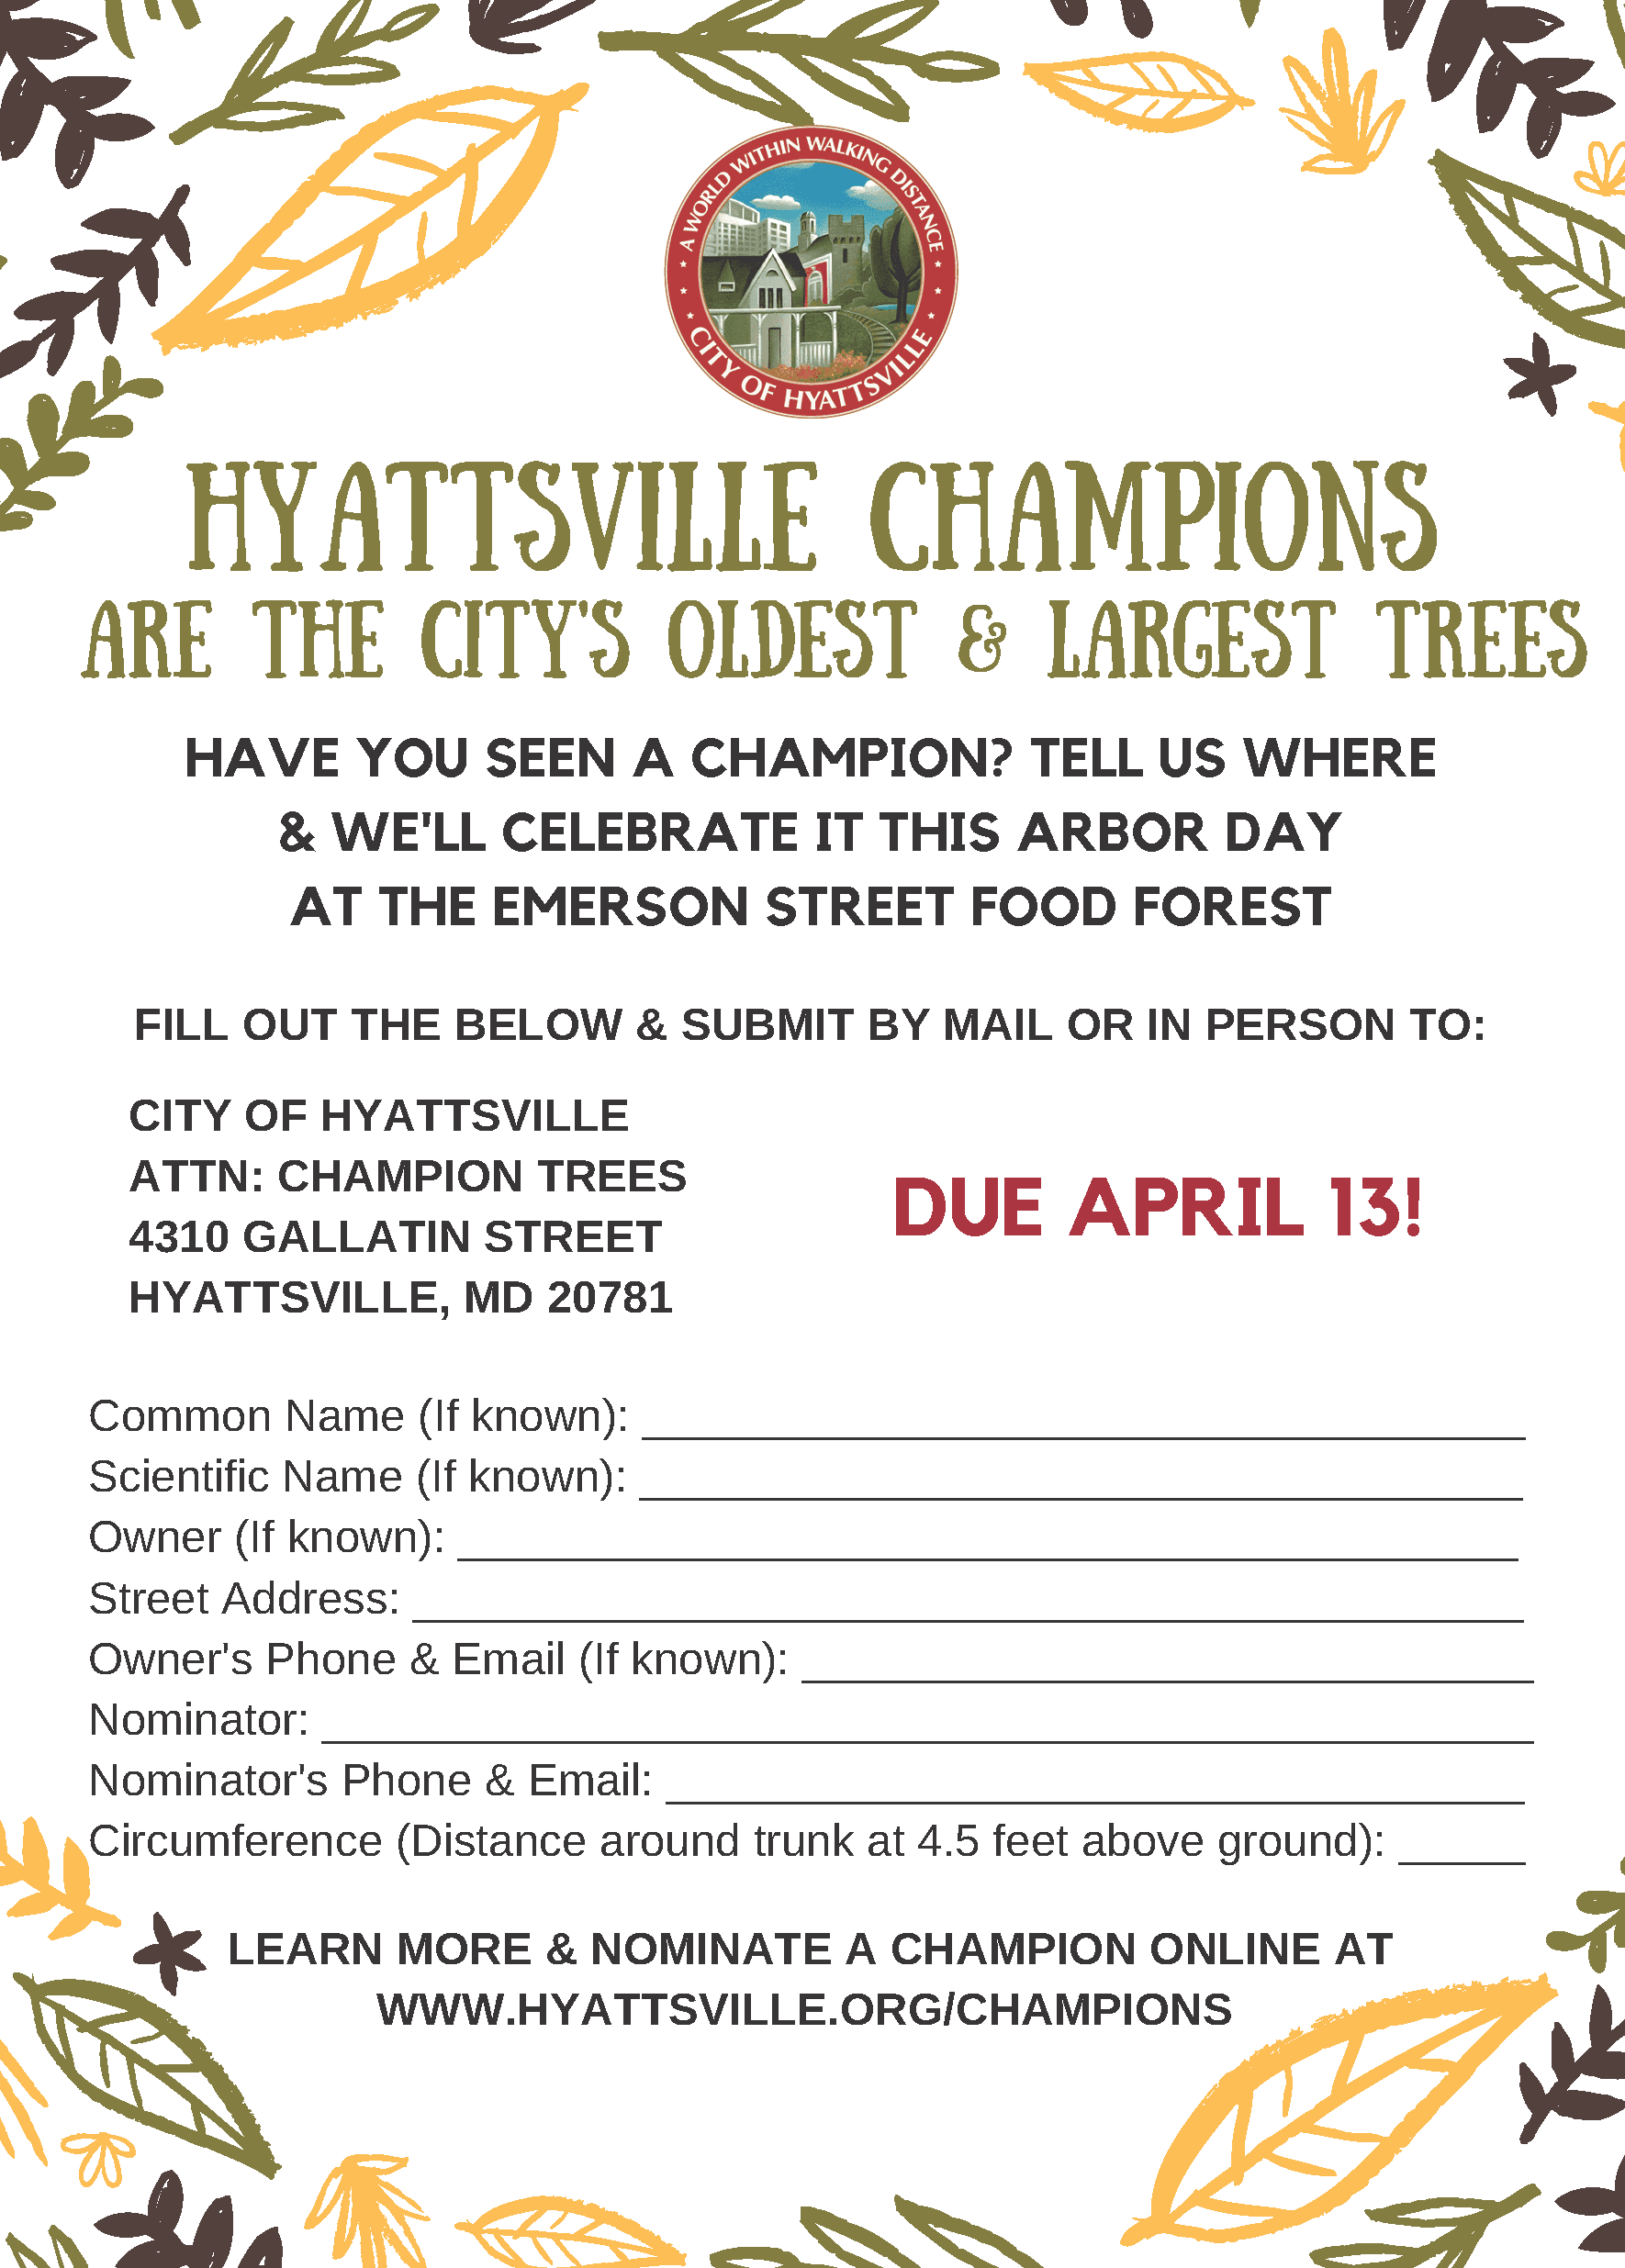 2018 Champion Trees Flyer and Nomination Form